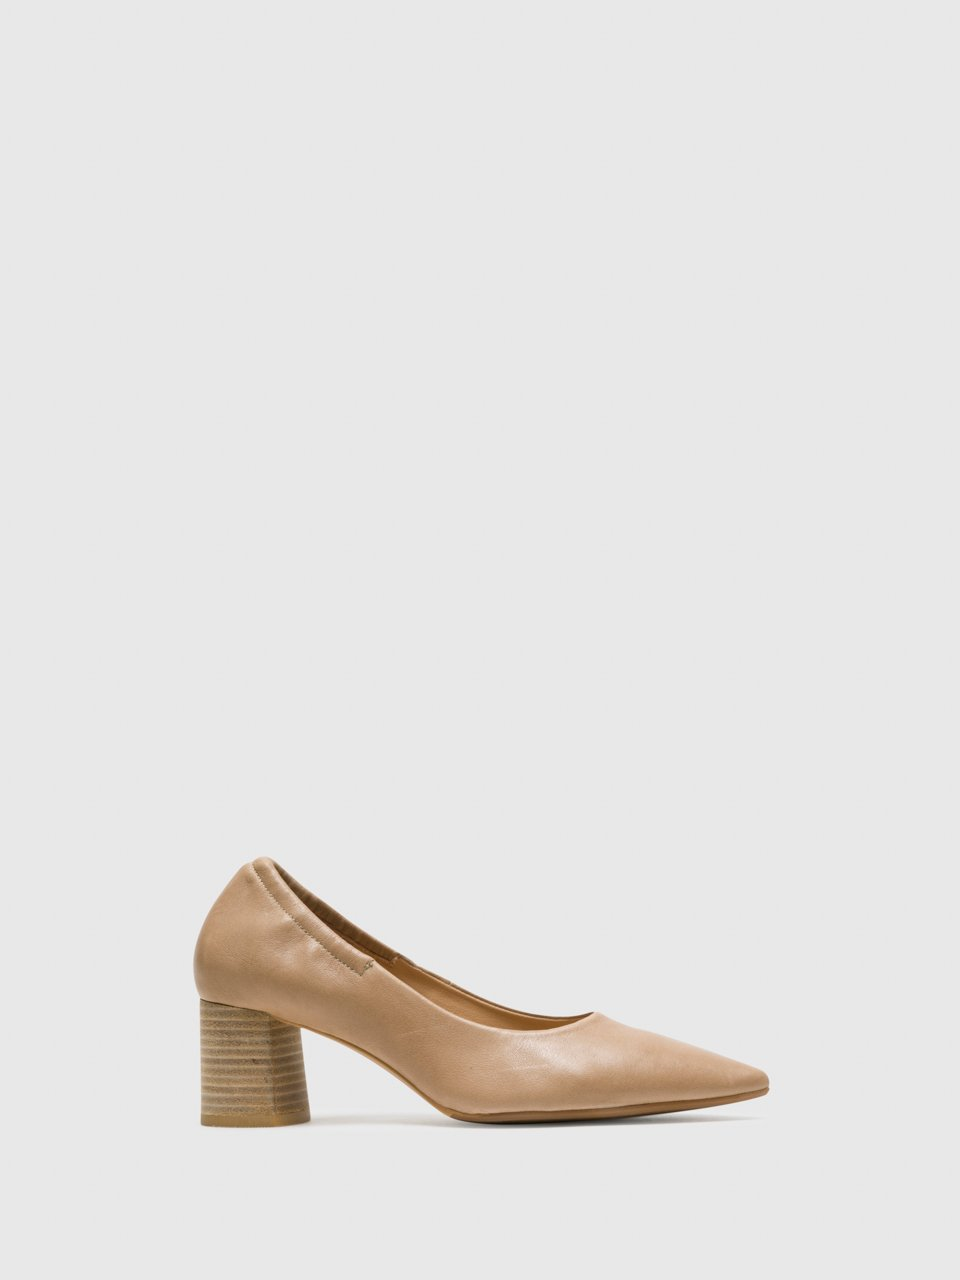 Perlato Beige Round Toe Pumps Shoes